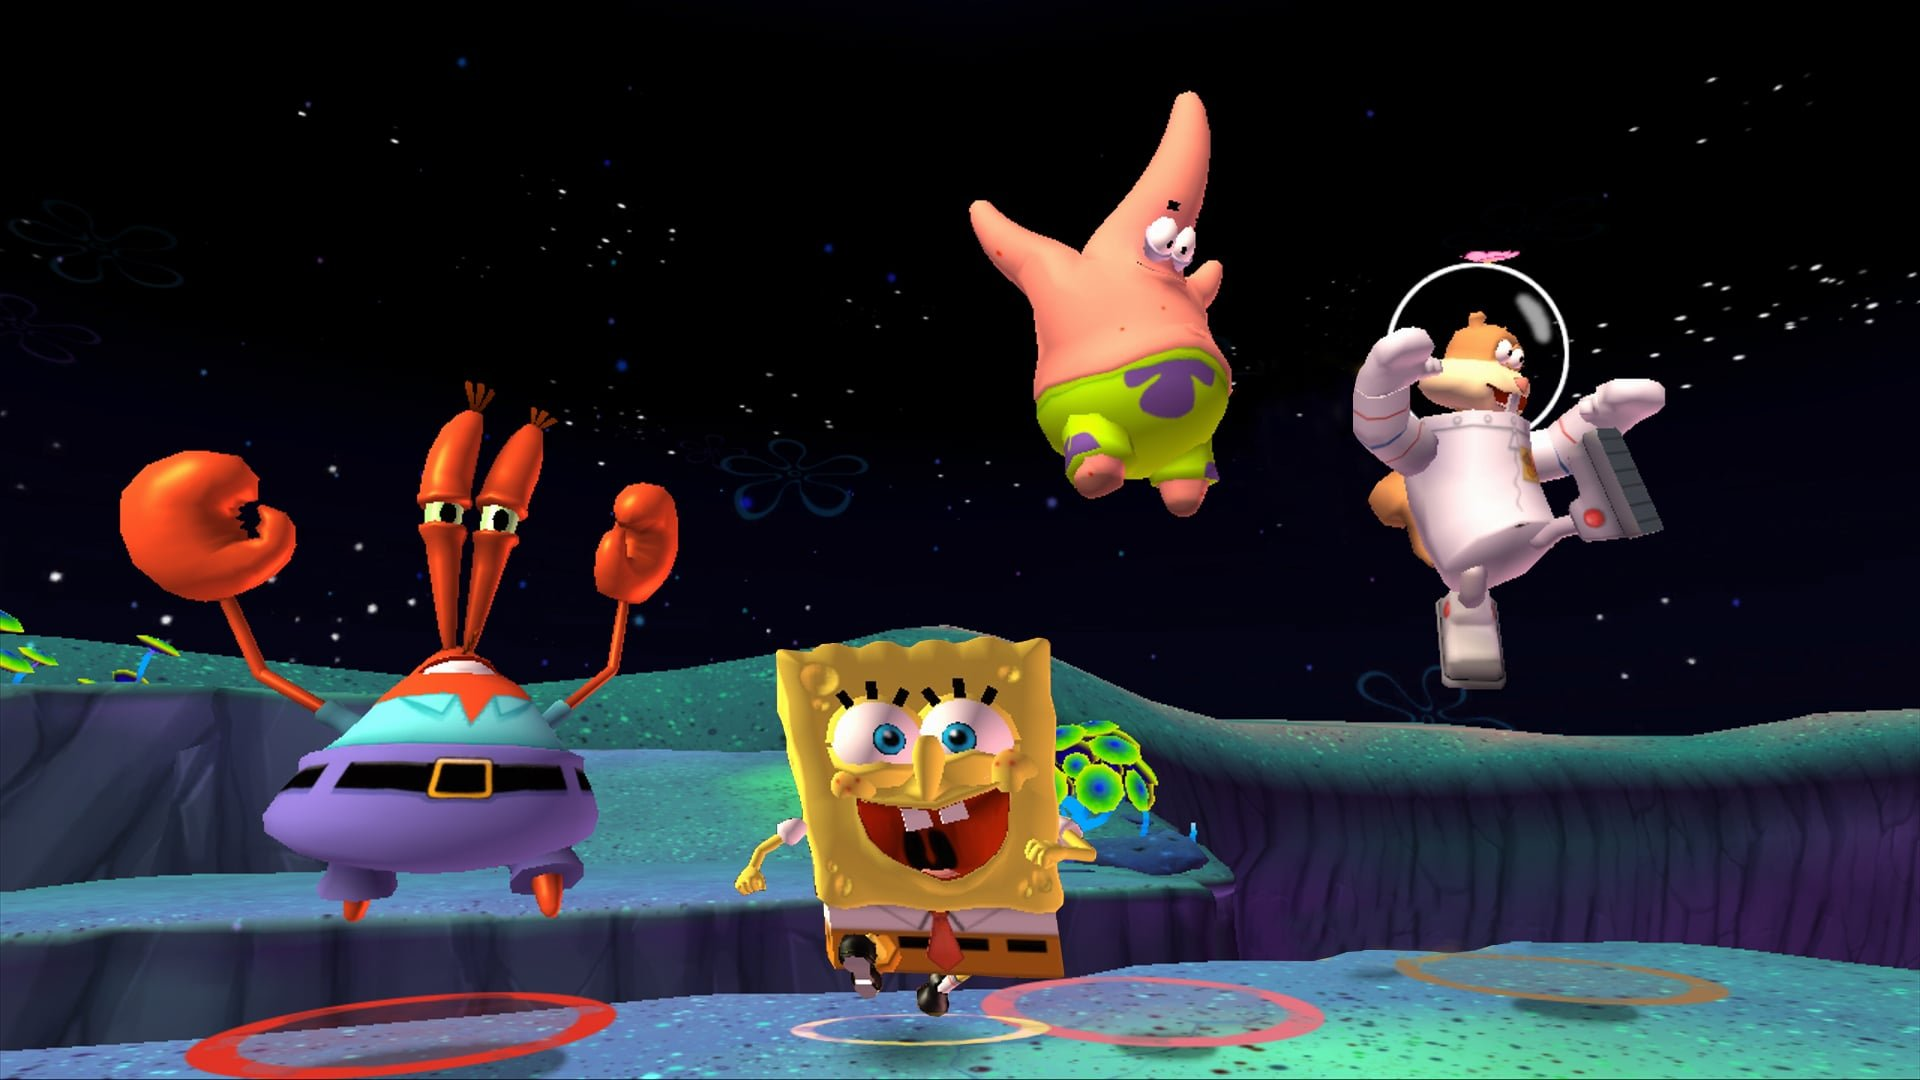 latest spongebob game out now in europe